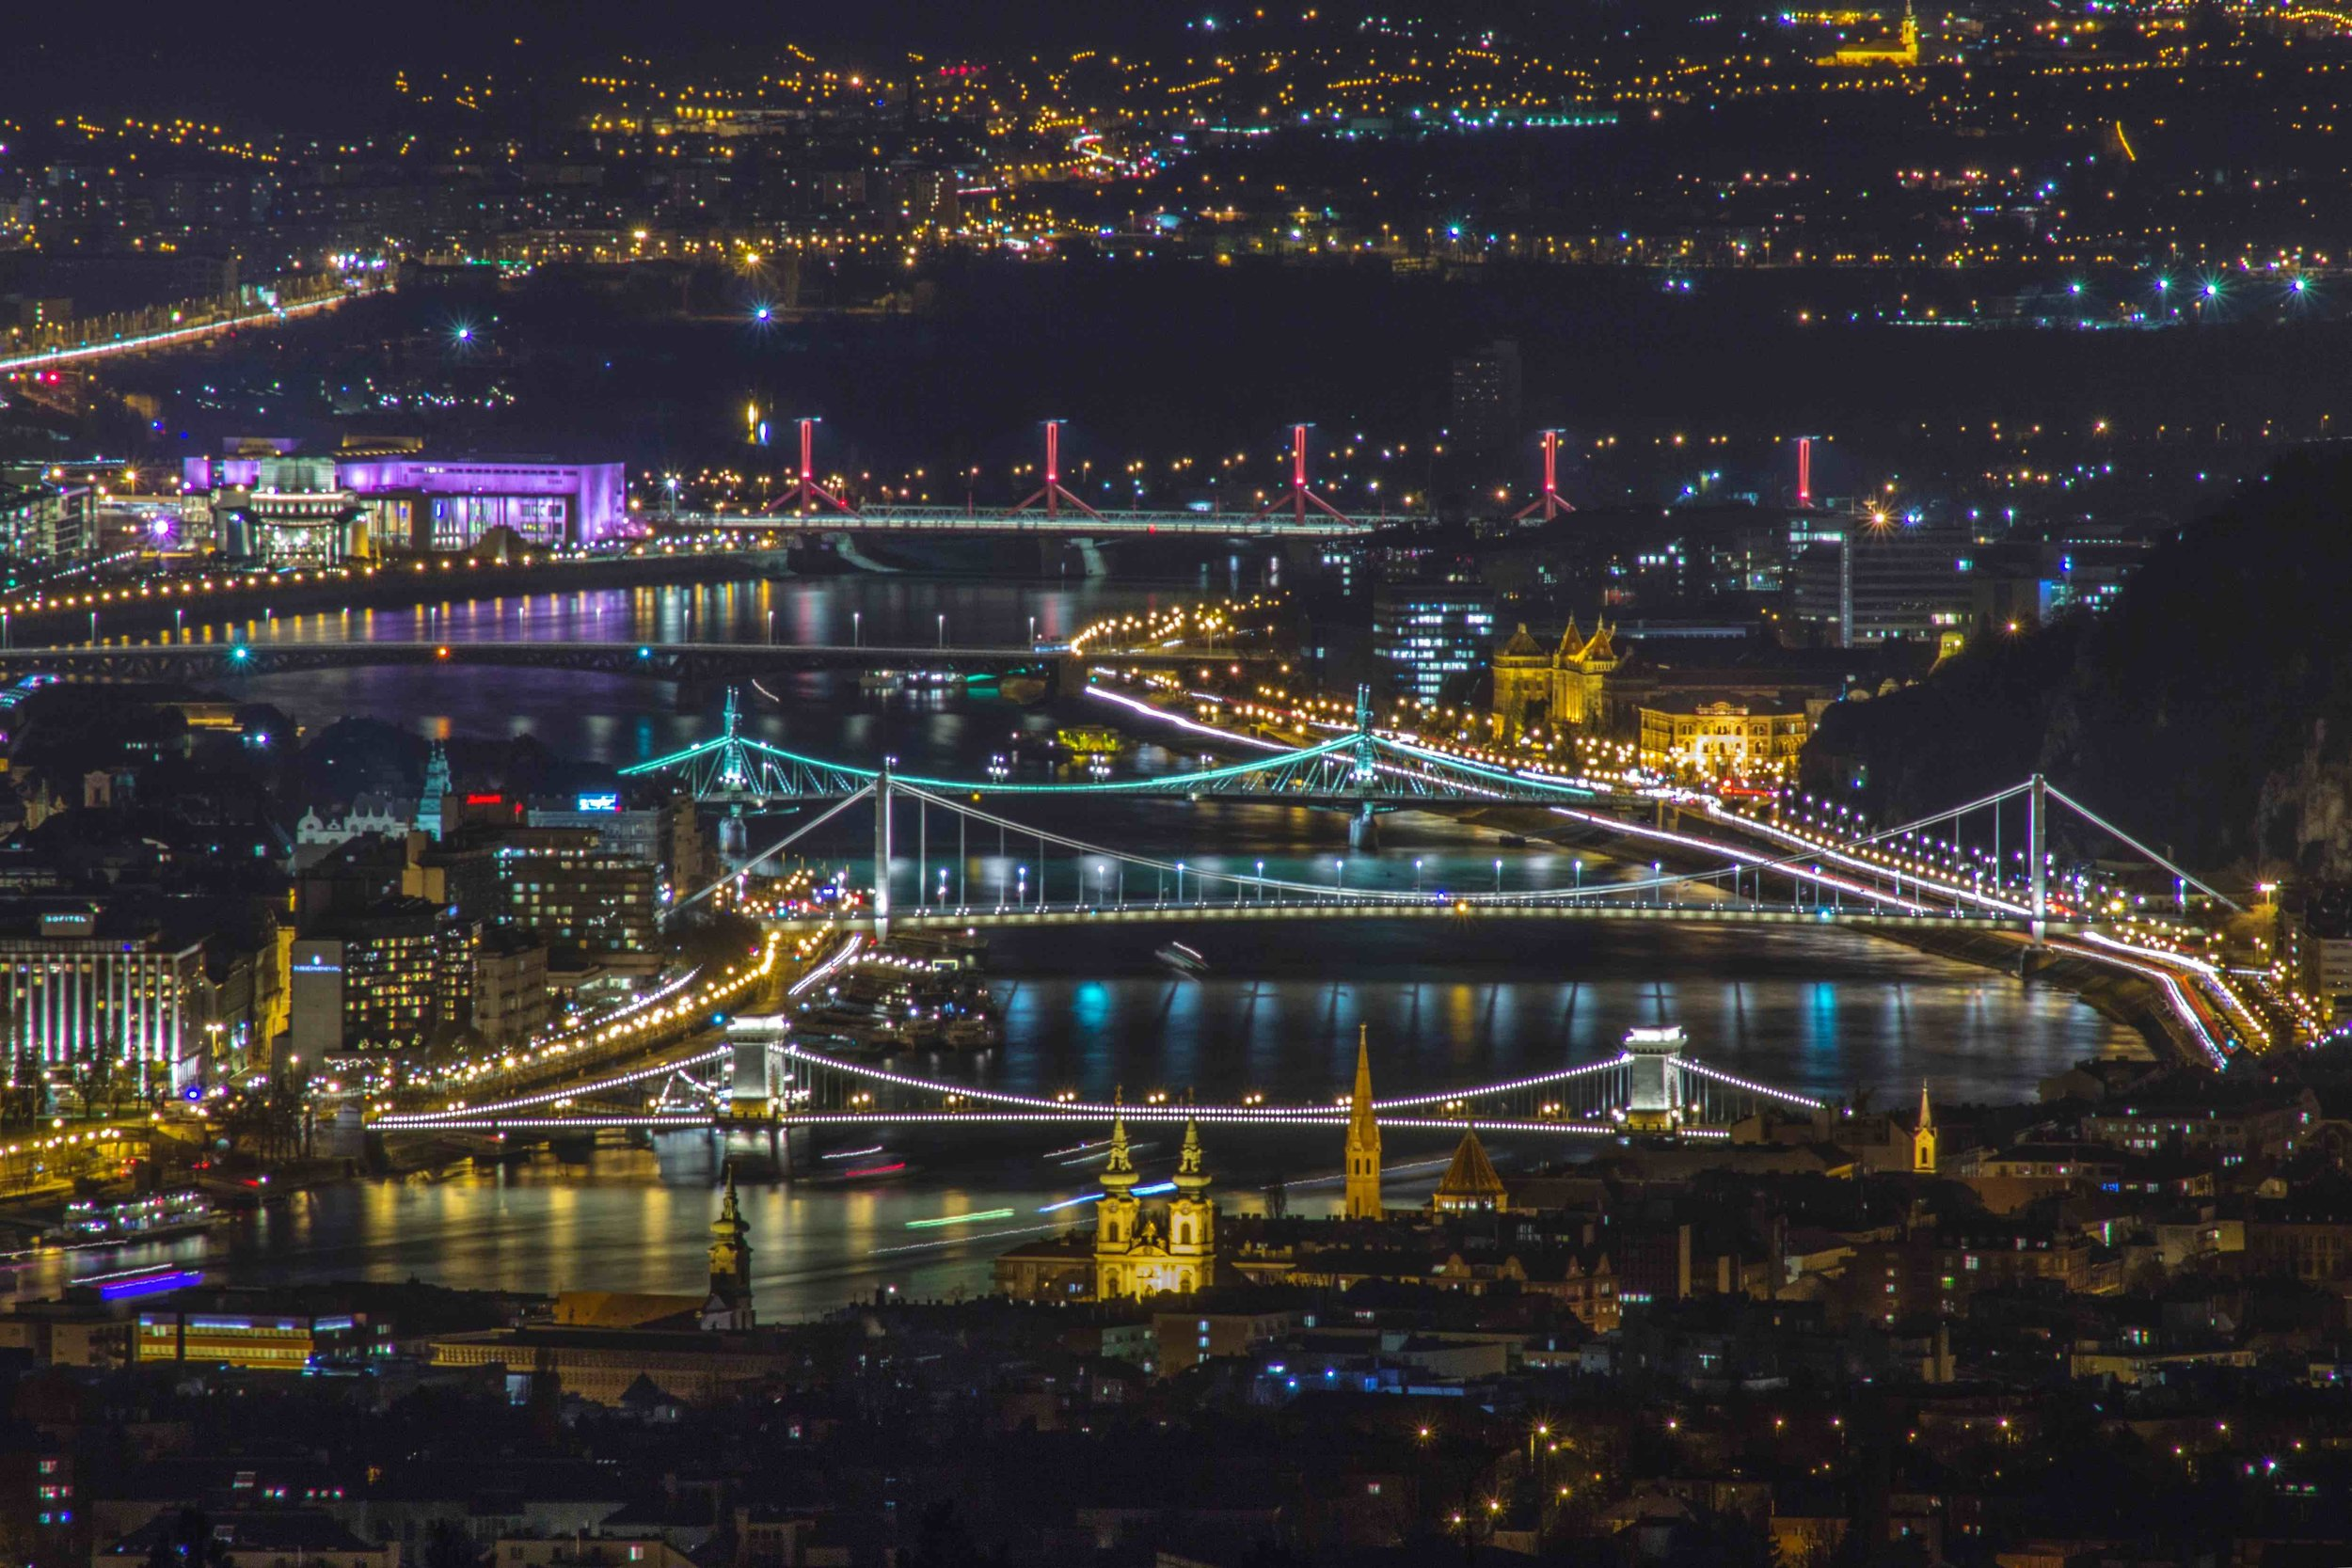 hungarian patent - File a national application in the heart of Europe.